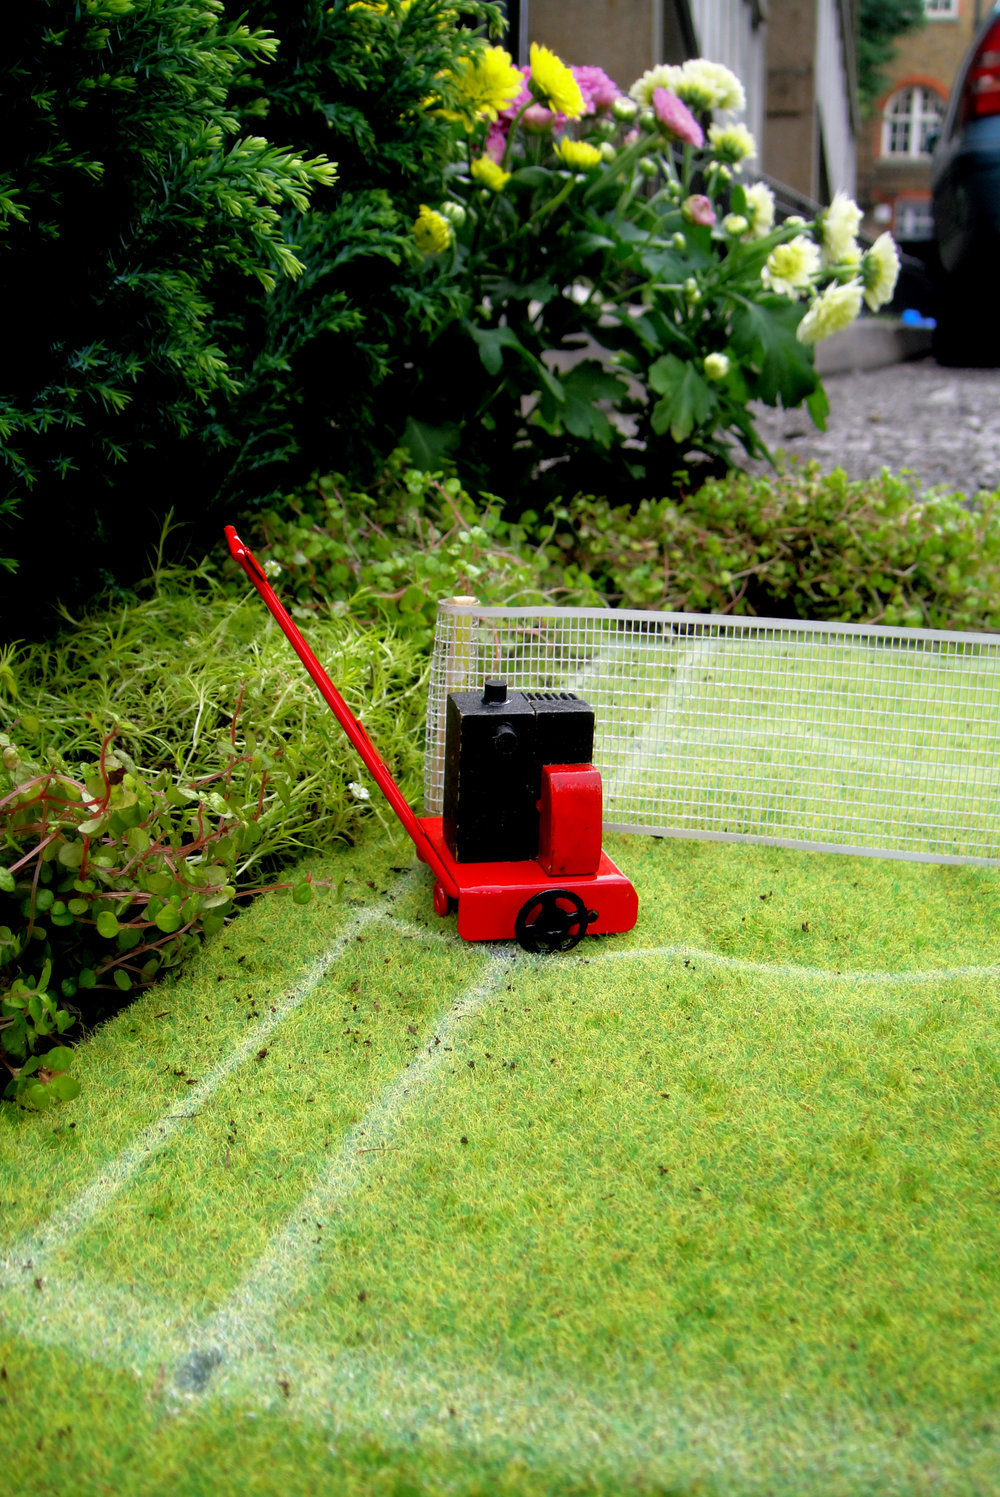 wimbledon tennis London pothole garden Lawn mower